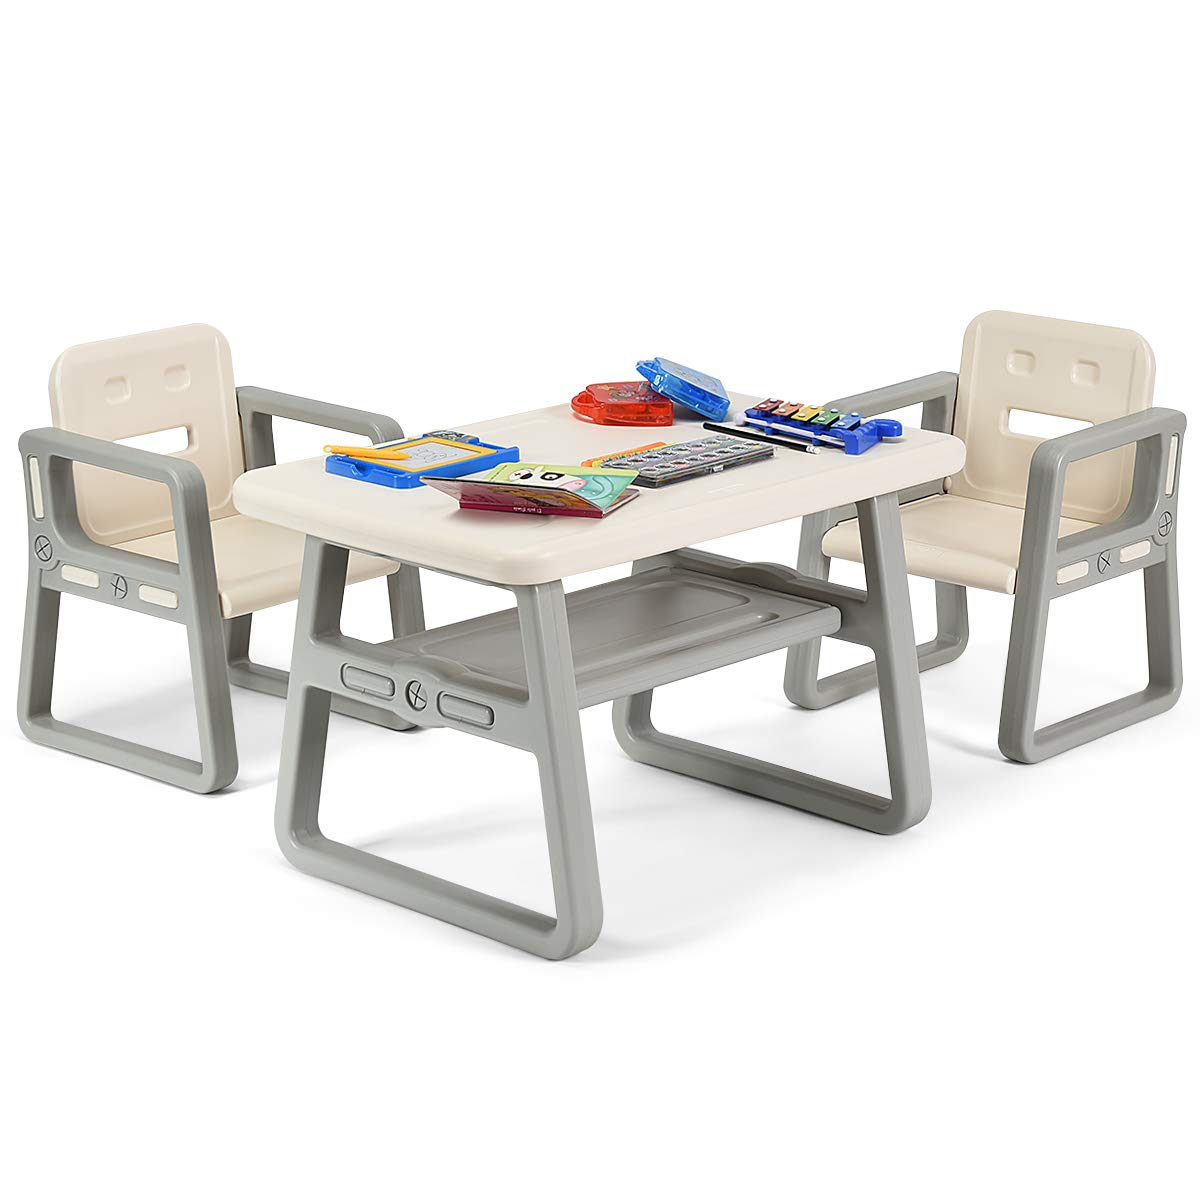 Costzon Kids Table and 2 Chair Set, Children Table Furniture with Storage Rack for Toddlers Reading, Learning, Dining, Playroom, Desk Chair for 1 to 3 Years, Activity Table Desk Sets (White) by Costzon